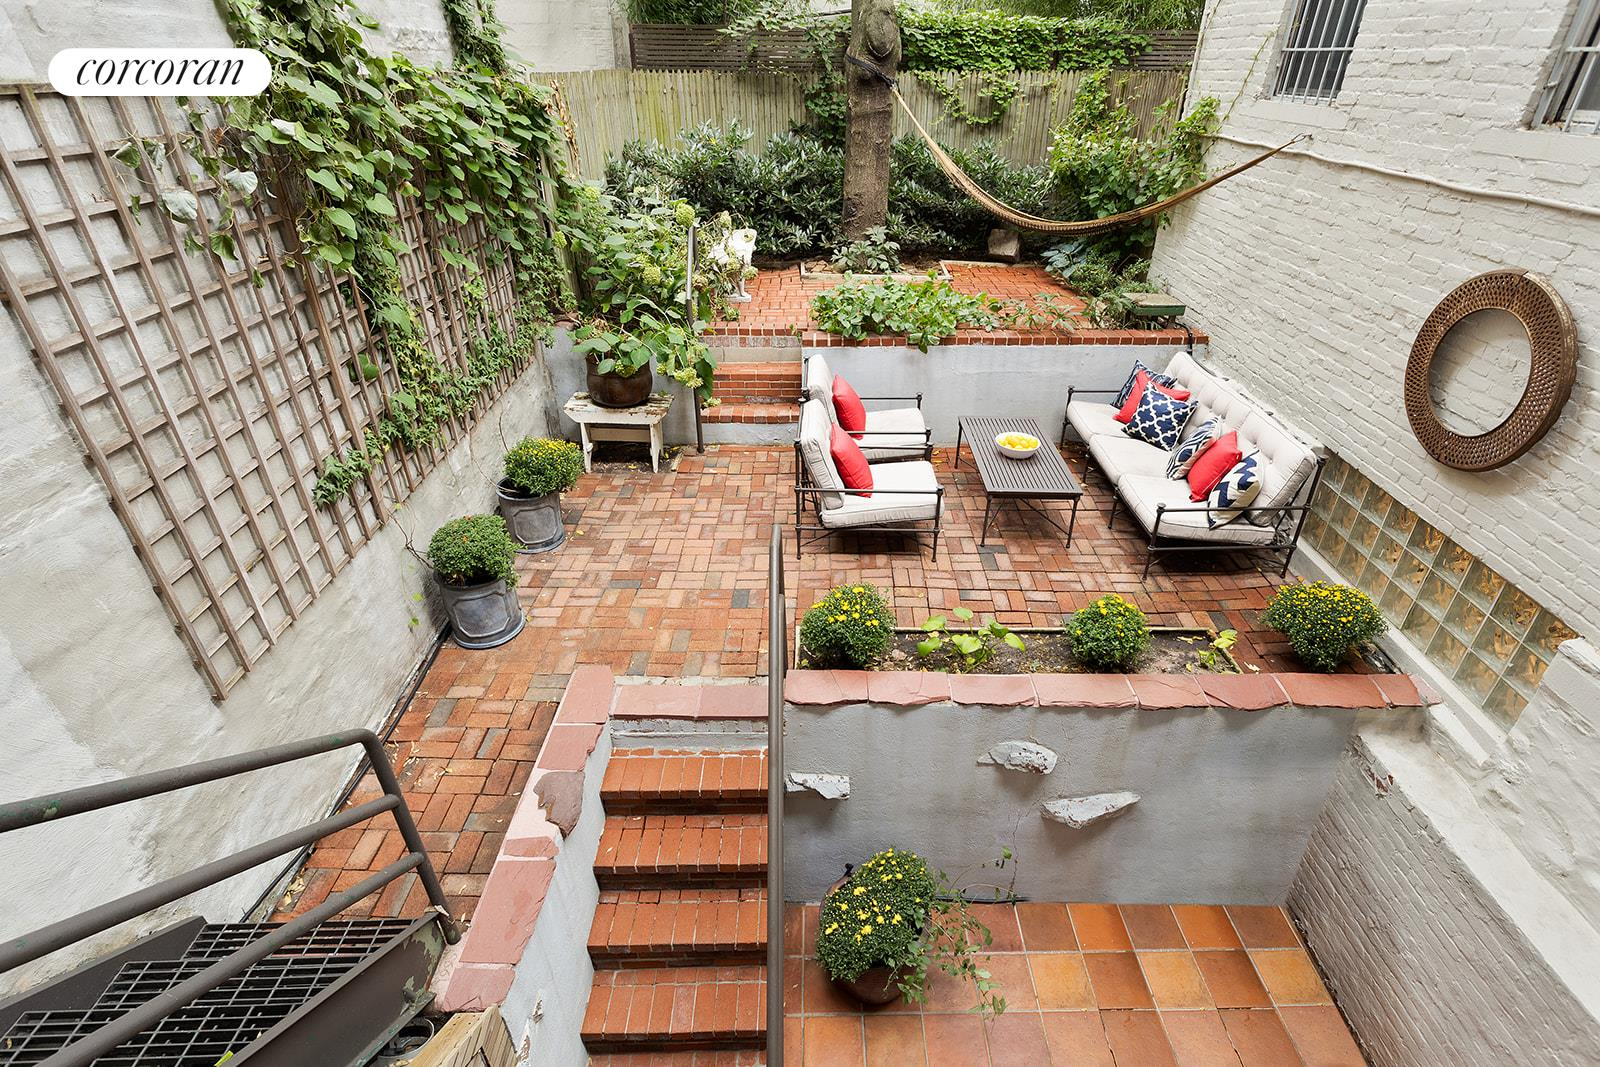 Back on the market! URBAN OASIS...WITH THREE-TIERED PRIVATE GARDEN ~ Looking for a spacious and tranquil home with sprawling outdoor space in Manhattan? You've found it. 425 East 9th Street #1A is a huge duplex coop (approximately 1200 interior square feet) that boasts a highly-coveted garden sanctuary in the heart of the East Village. Offering open-air serenity spread over three levels of exclusive backyard -- this exceedingly rare space is ideal for gardening, al fresco dining, lounging in a hammock and getting together with friends. Off the garden, enter into the oversized newly-renovated dining area on the lower level of the apartment, complete with abundant cabinet storage, stone countertops, luscious backsplash, walk-in pantry and white-washed exposed brick. There is also a useful media room on this level that could be used in a variety of ways, as well as a bathroom and a large closet that extends under the staircase. Upstairs, find a large living area that could be configured as another bedroom if so desired. This beautiful room includes enviable storage space, a built-in window seat overlooking the lush garden, a balcony with staircase down to the garden and a built-in work space with desk, bookshelves and drawers. The top-floor also holds the main bedroom with its own built-in closet. The top-floor full bathroom offers spa-like features: an expansive walk-in shower and plenty of storage space. Throughout the home, you'll find unique original details: gorgeous arched doorways with rich wood frames, sound-reduction flooring and exposed brick. Unit 1A is a legal one bedroom apartment currently being used as a two bedroom. 425 E. 9th Street is an eight-unit coop that offers central laundry and bike storage. Enjoy the ease of having top-notch restaurants, boutique shopping and Tompkins Square Park right on your doorstep. Pets welcome (cats OK / dogs upon board approval).